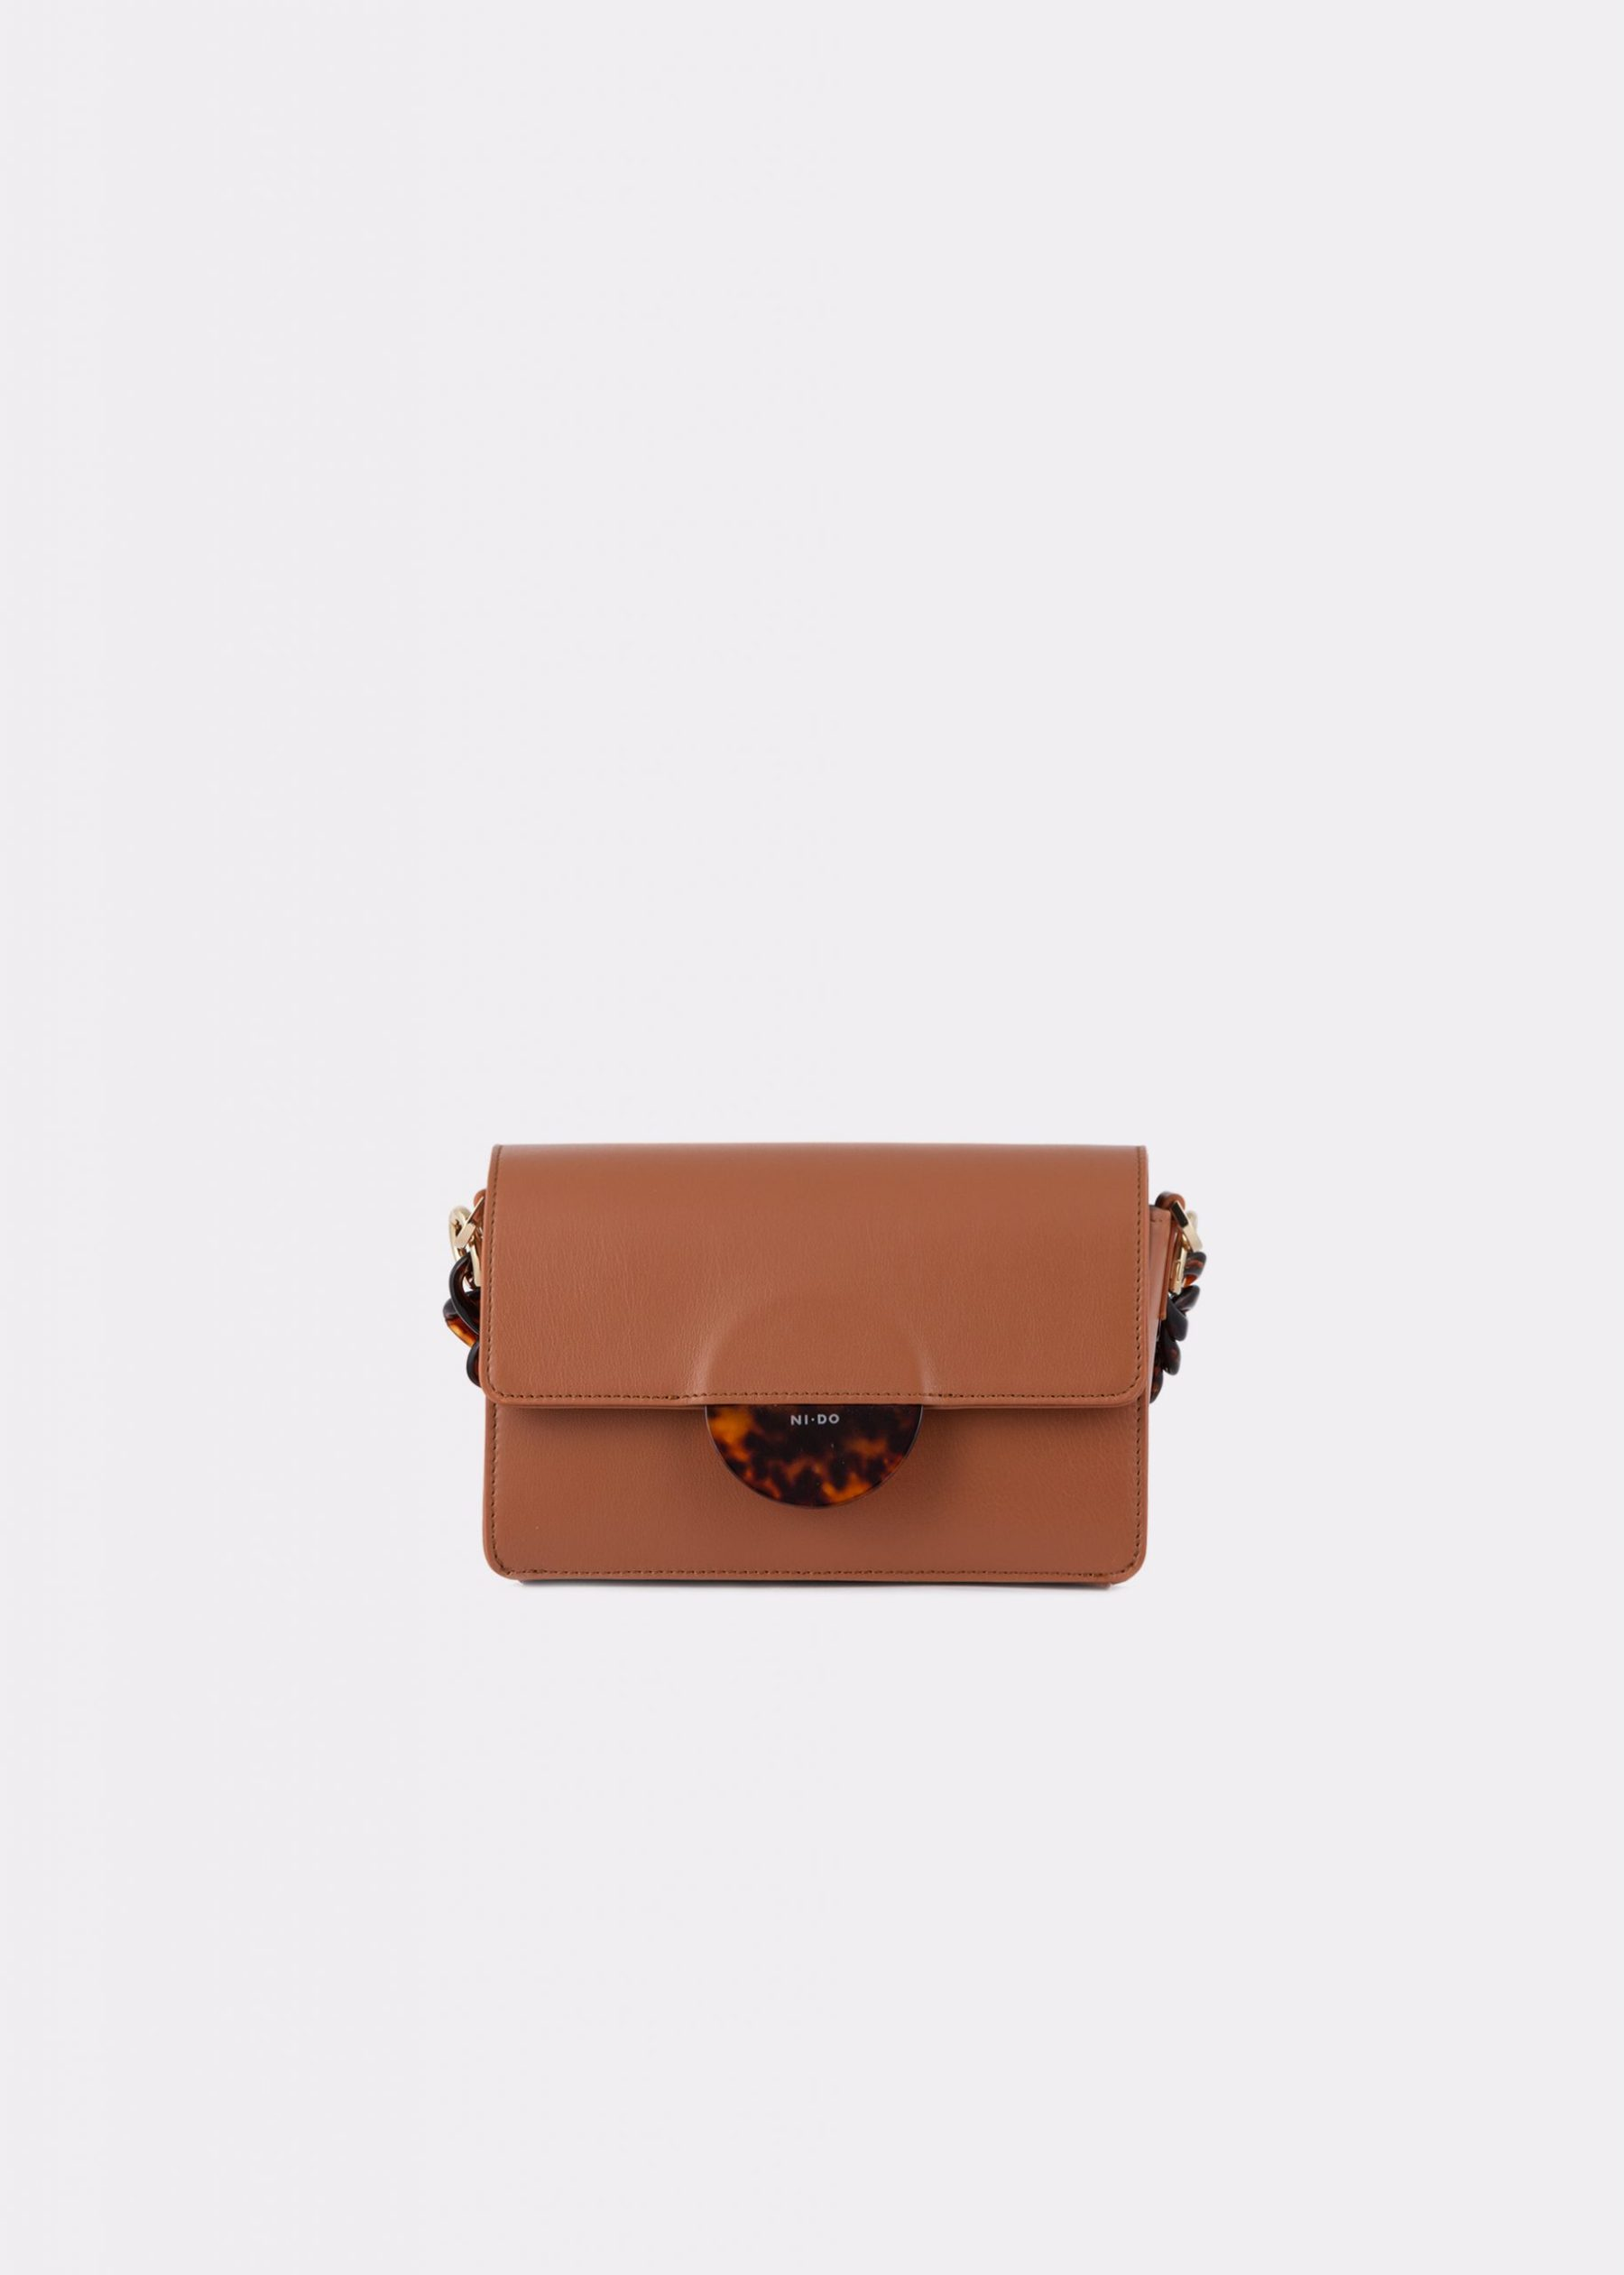 NIDO Cuore Mini bag Bisquit front view